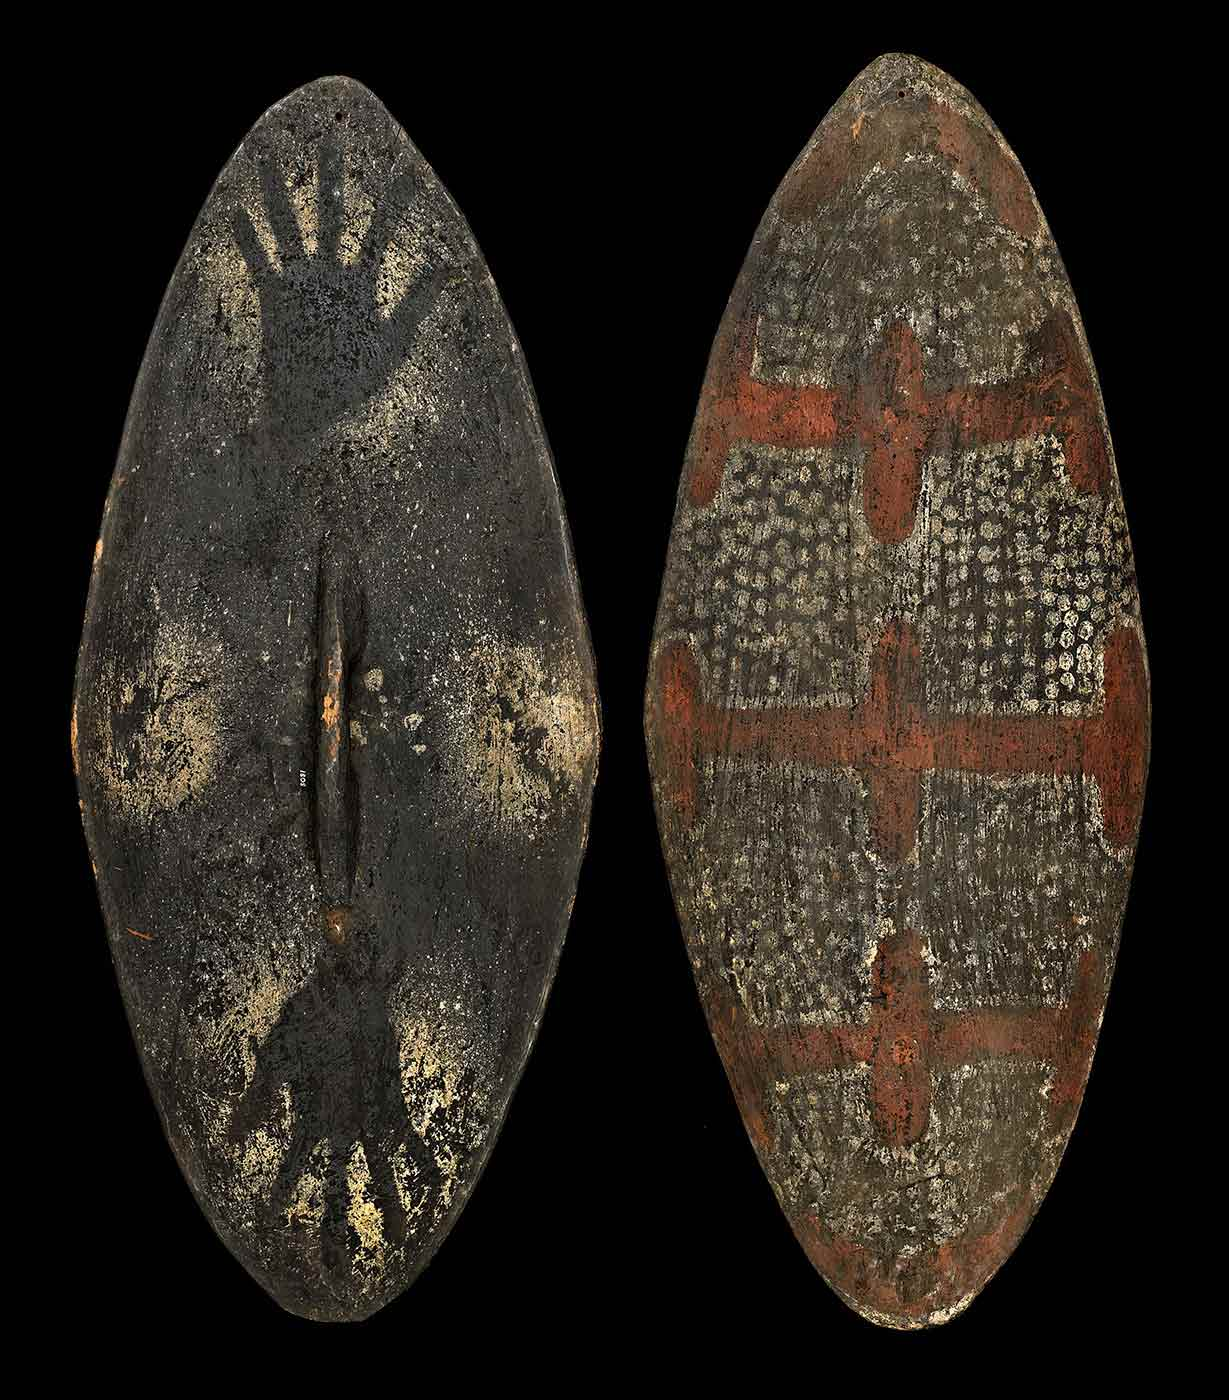 Image depicting both sides of a wooden shield. - click to view larger image